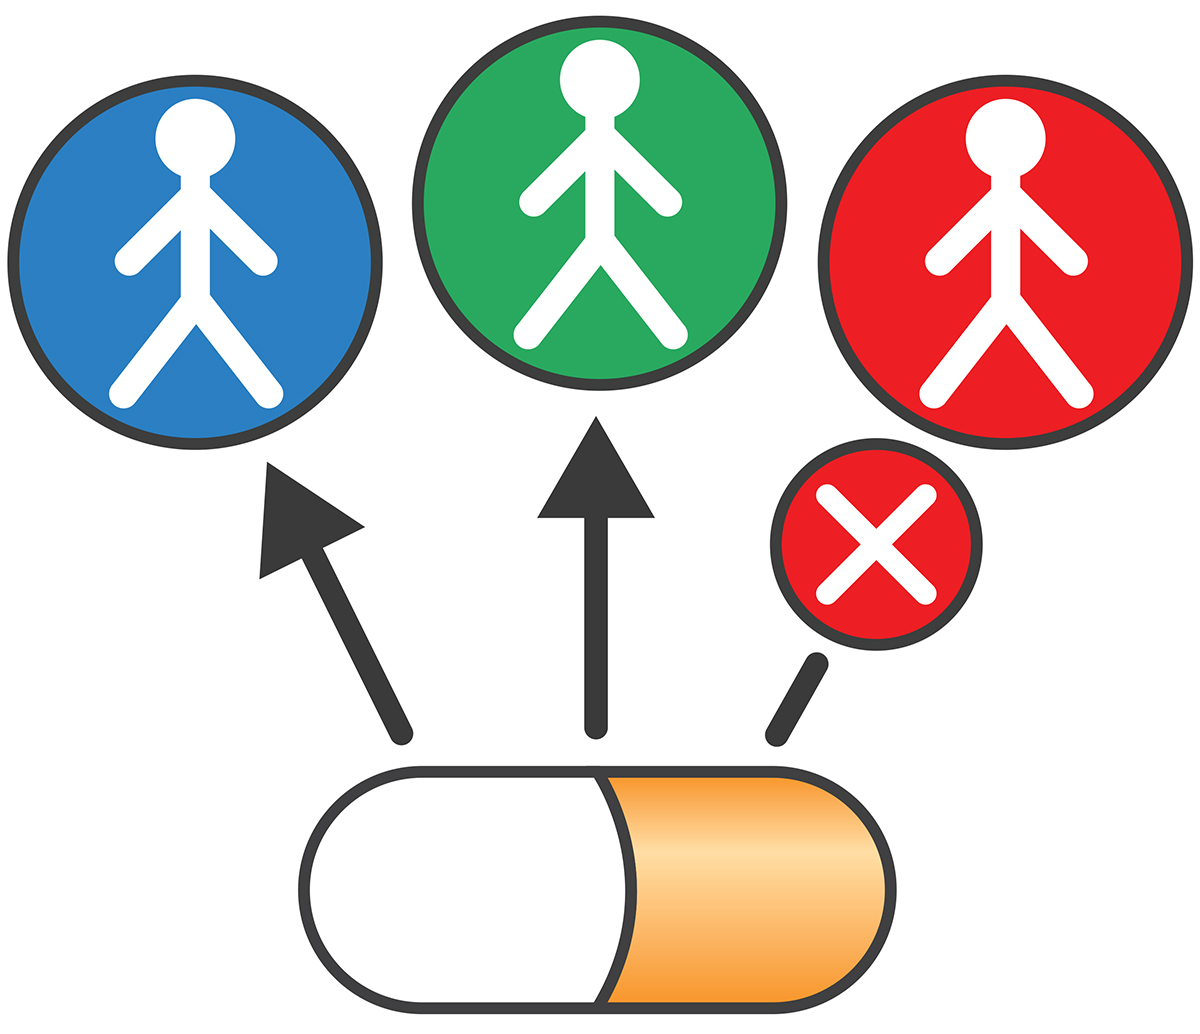 Image represent personalized medicine approach.